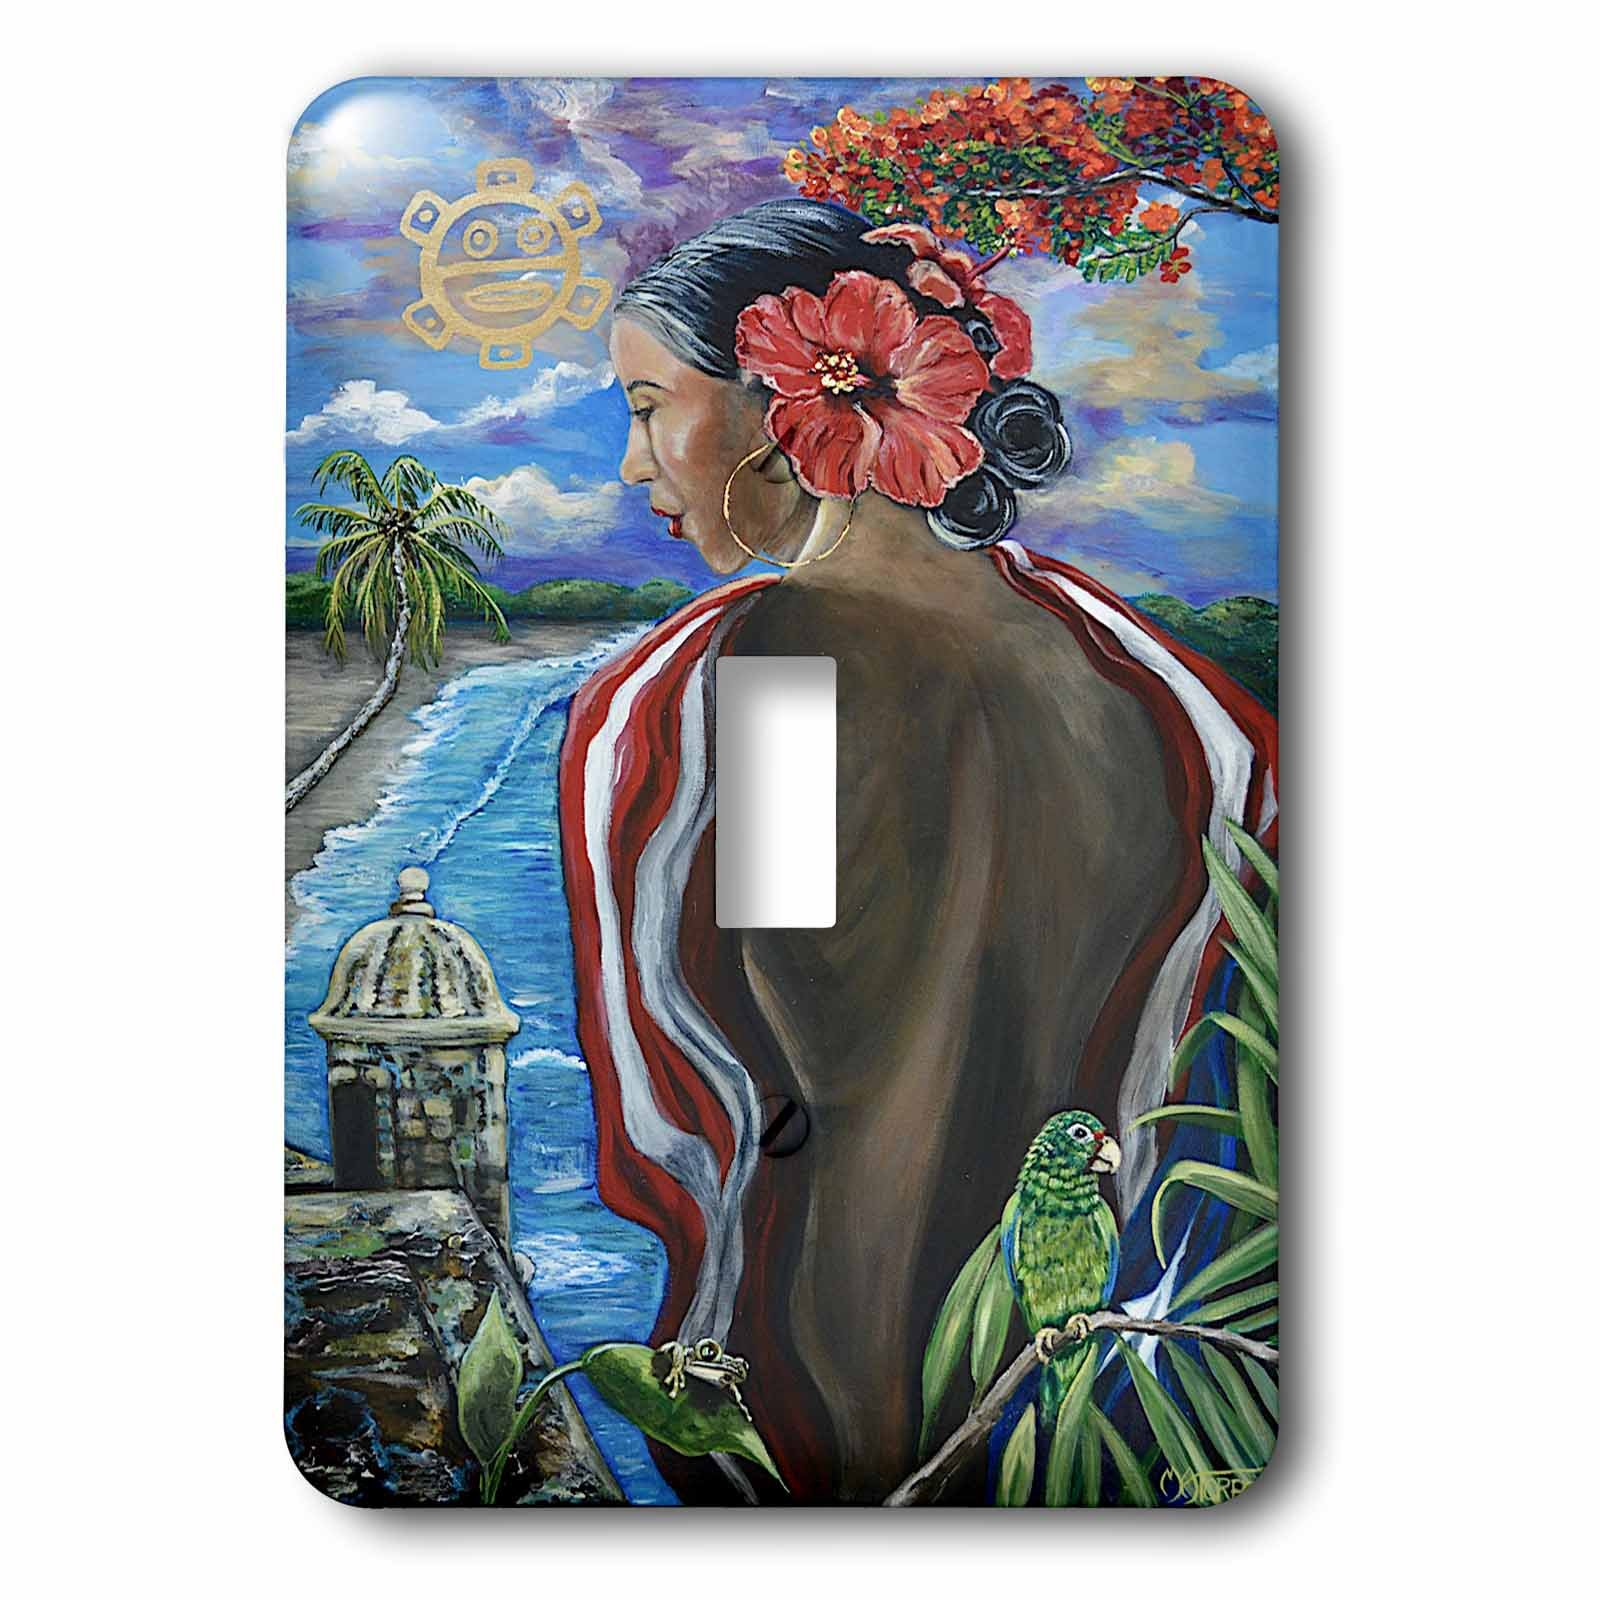 3dRose Melissa A. Torres Art Puerto Rican Art - Image of Woman with Puerto Rican imagery - Light Switch Covers - single toggle switch (lsp_261559_1)